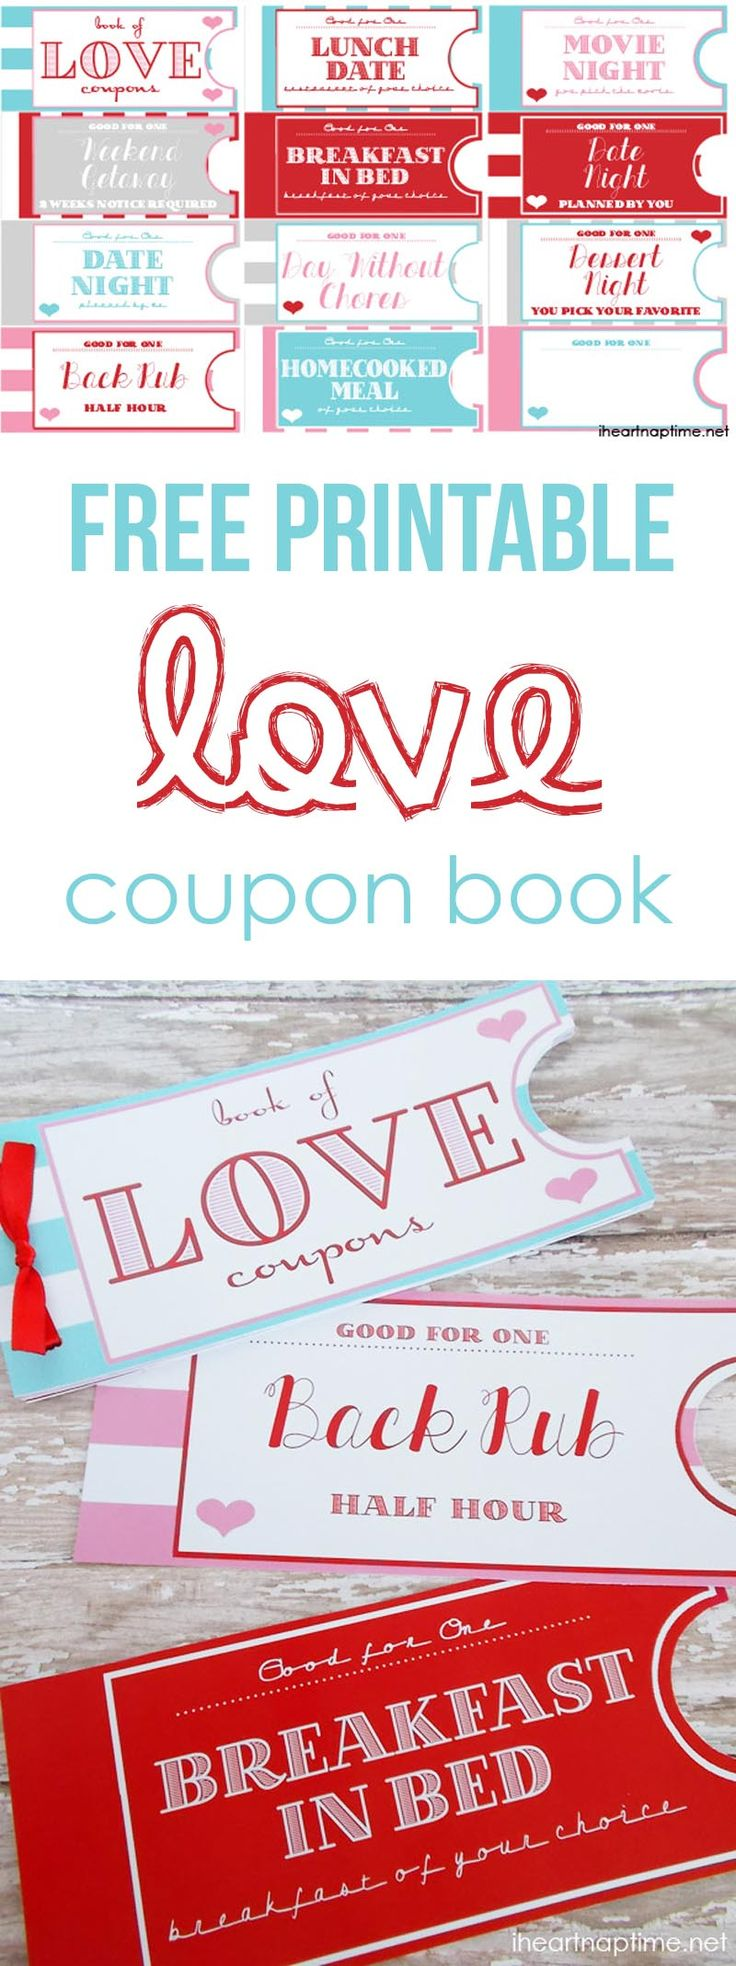 Free printable love coupon book on iheartnaptime.com ...such a fun and inexpensive idea for Valentines Day or an anniversary!